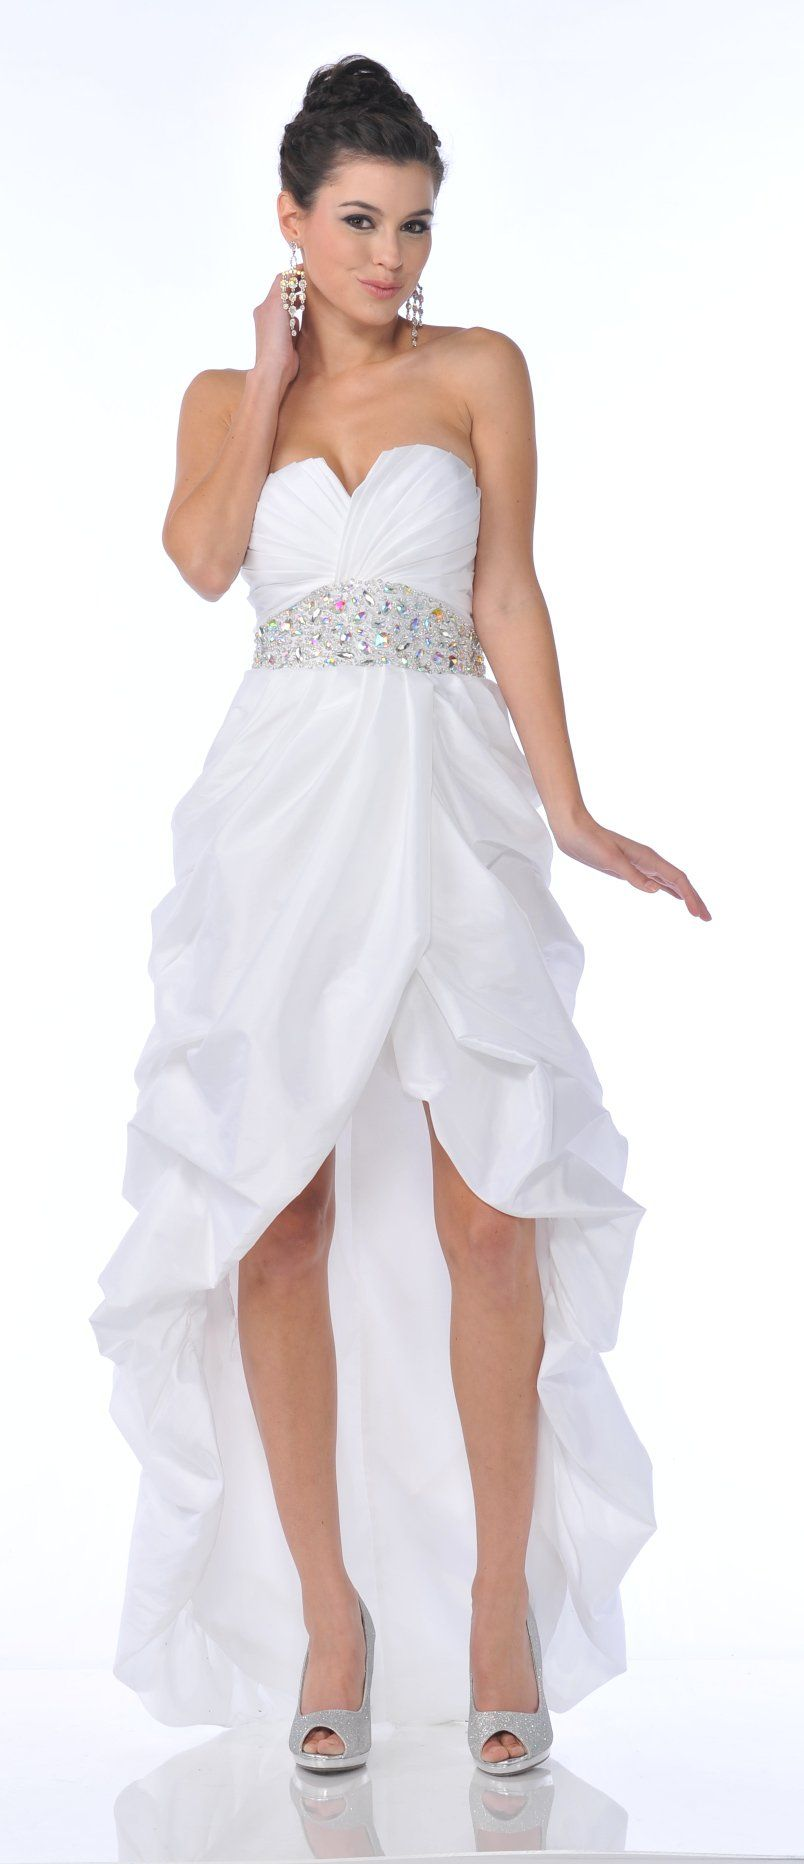 5a135d68fe52 Strapless White Prom Gown - raveitsafe